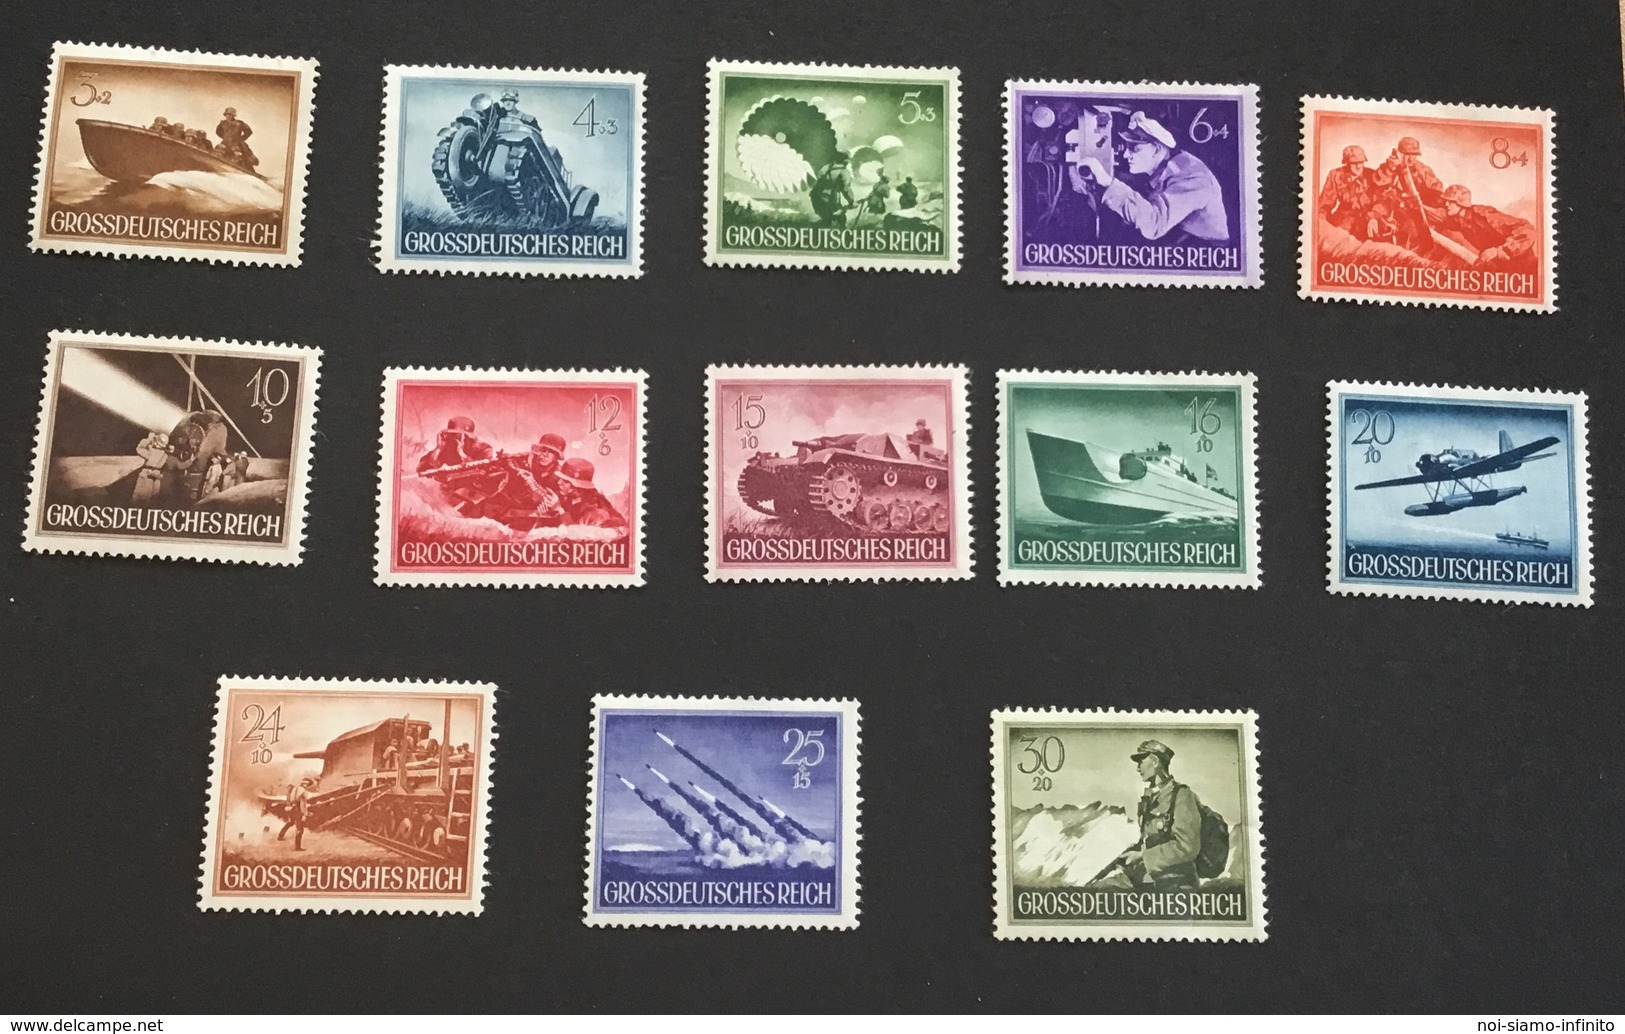 Allemagne III Reich 1944 Héros Neufs - Unused Stamps